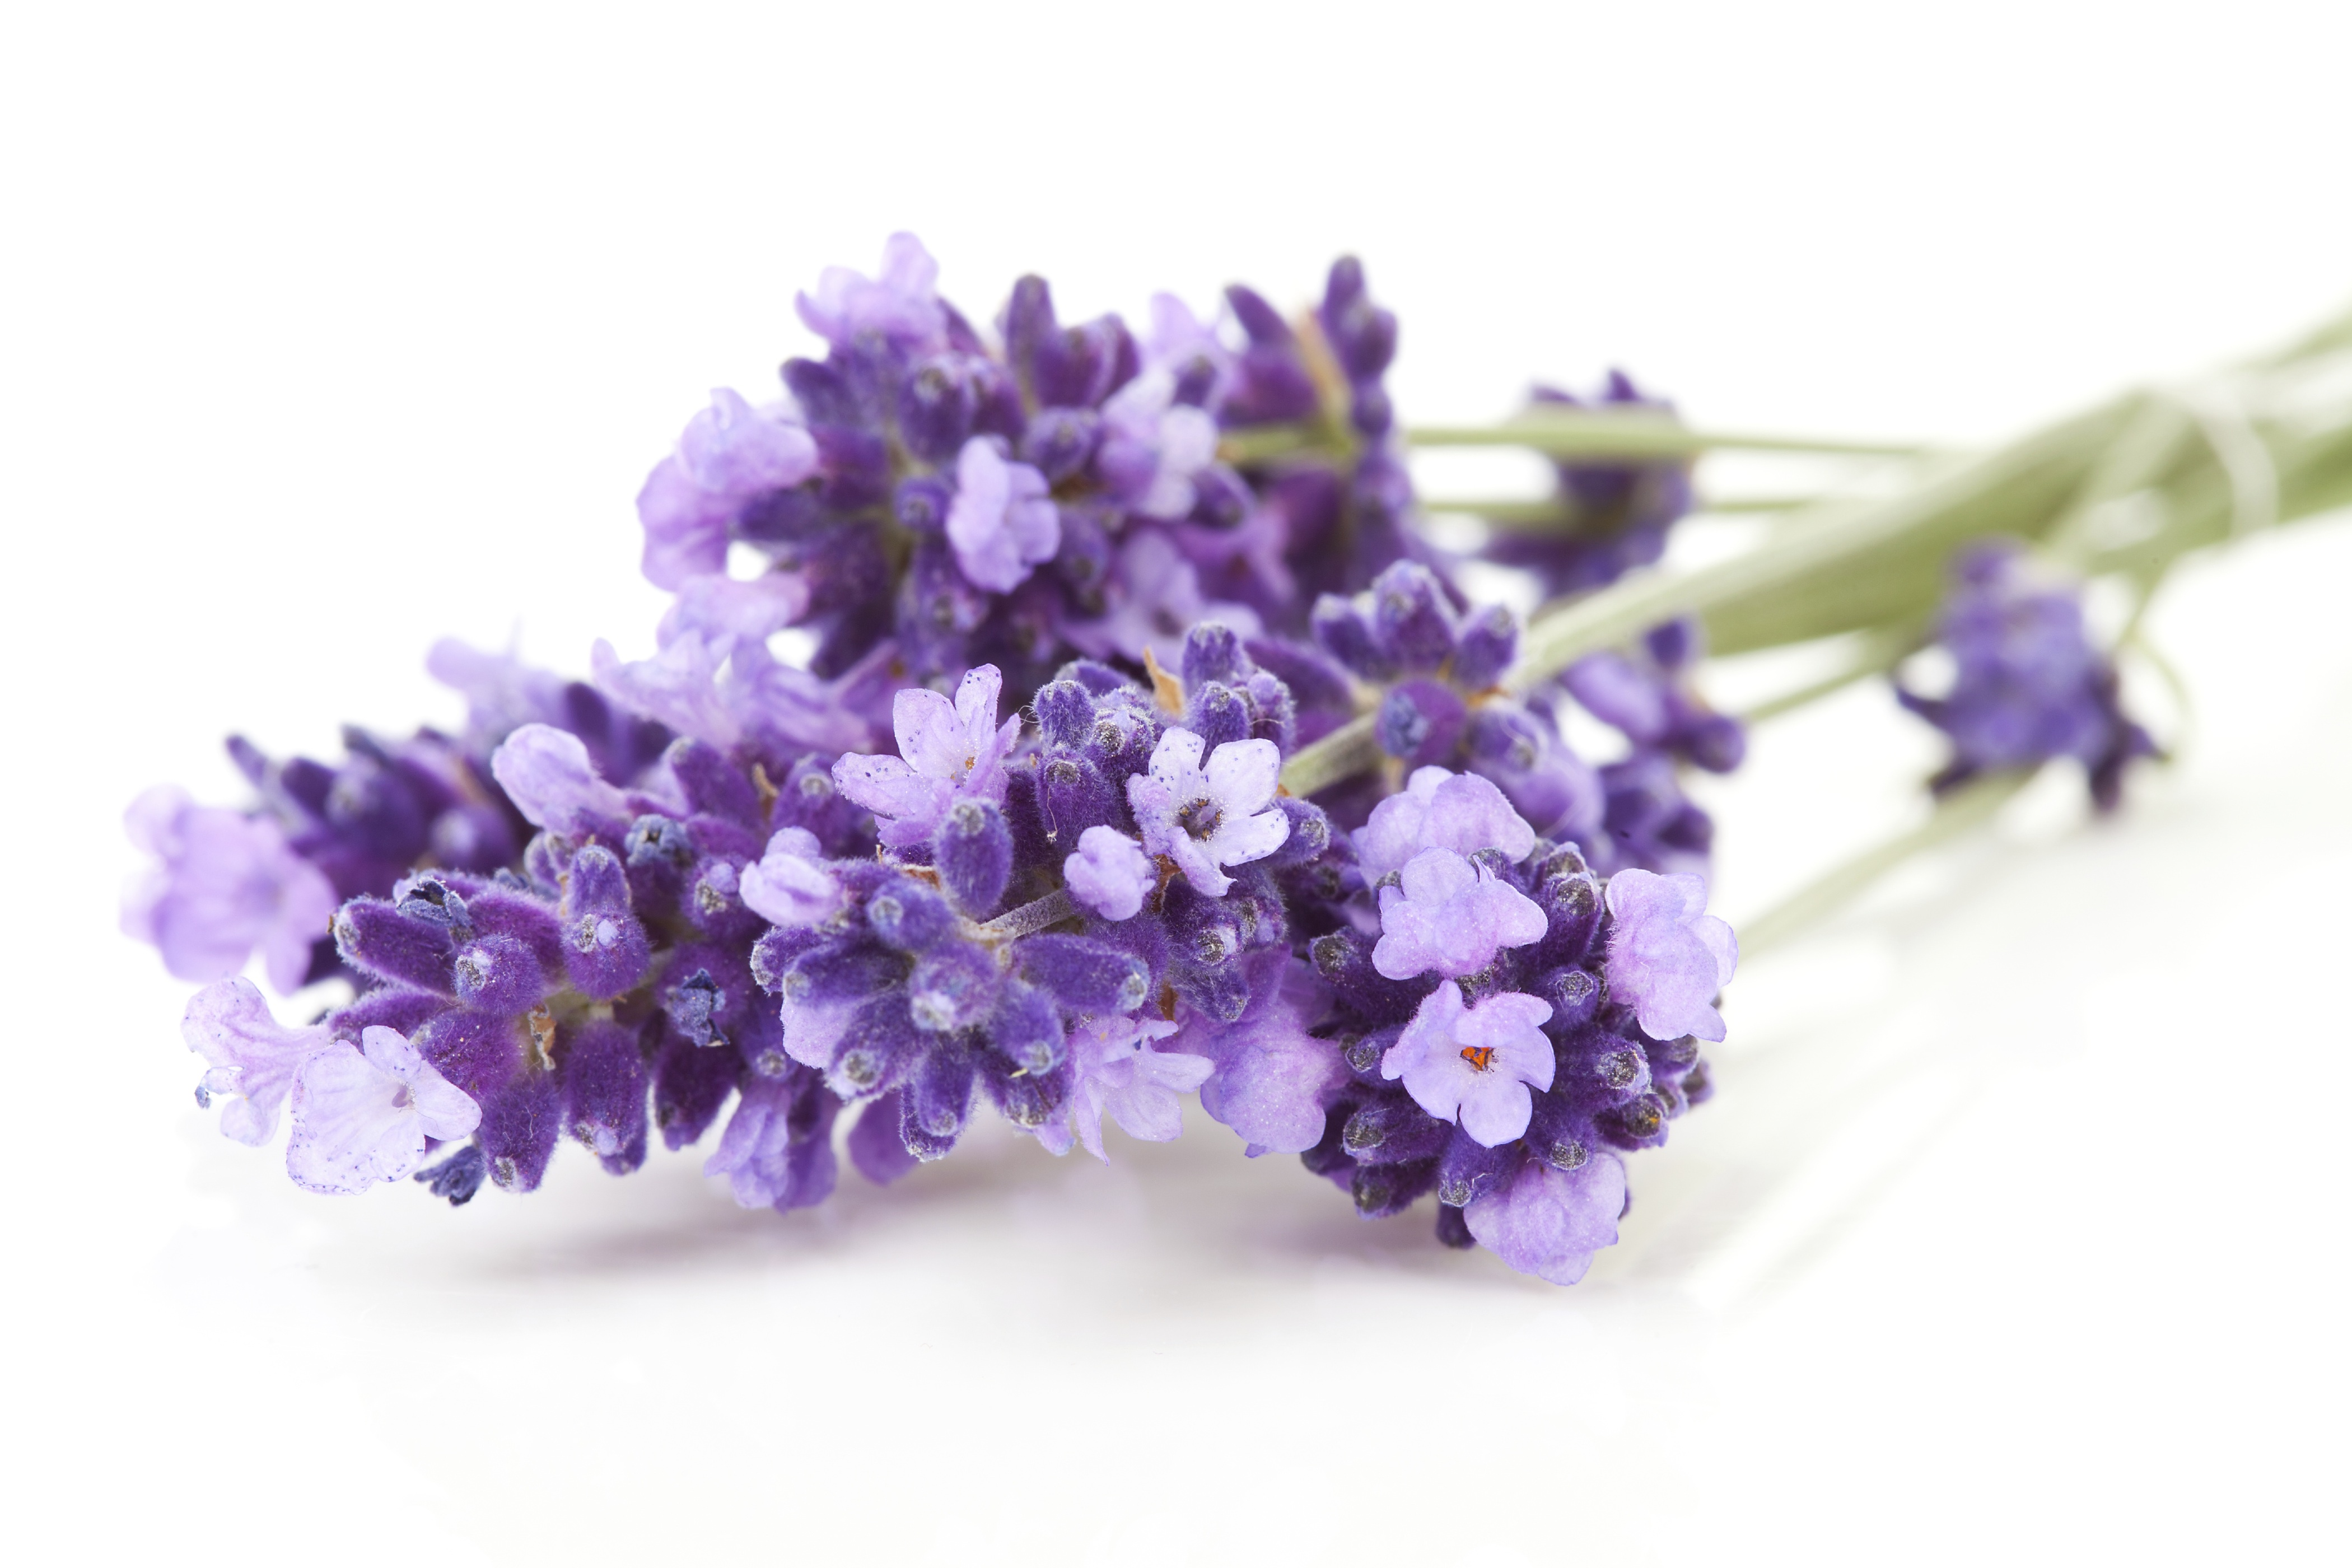 Lavender Oil Chemical Properties